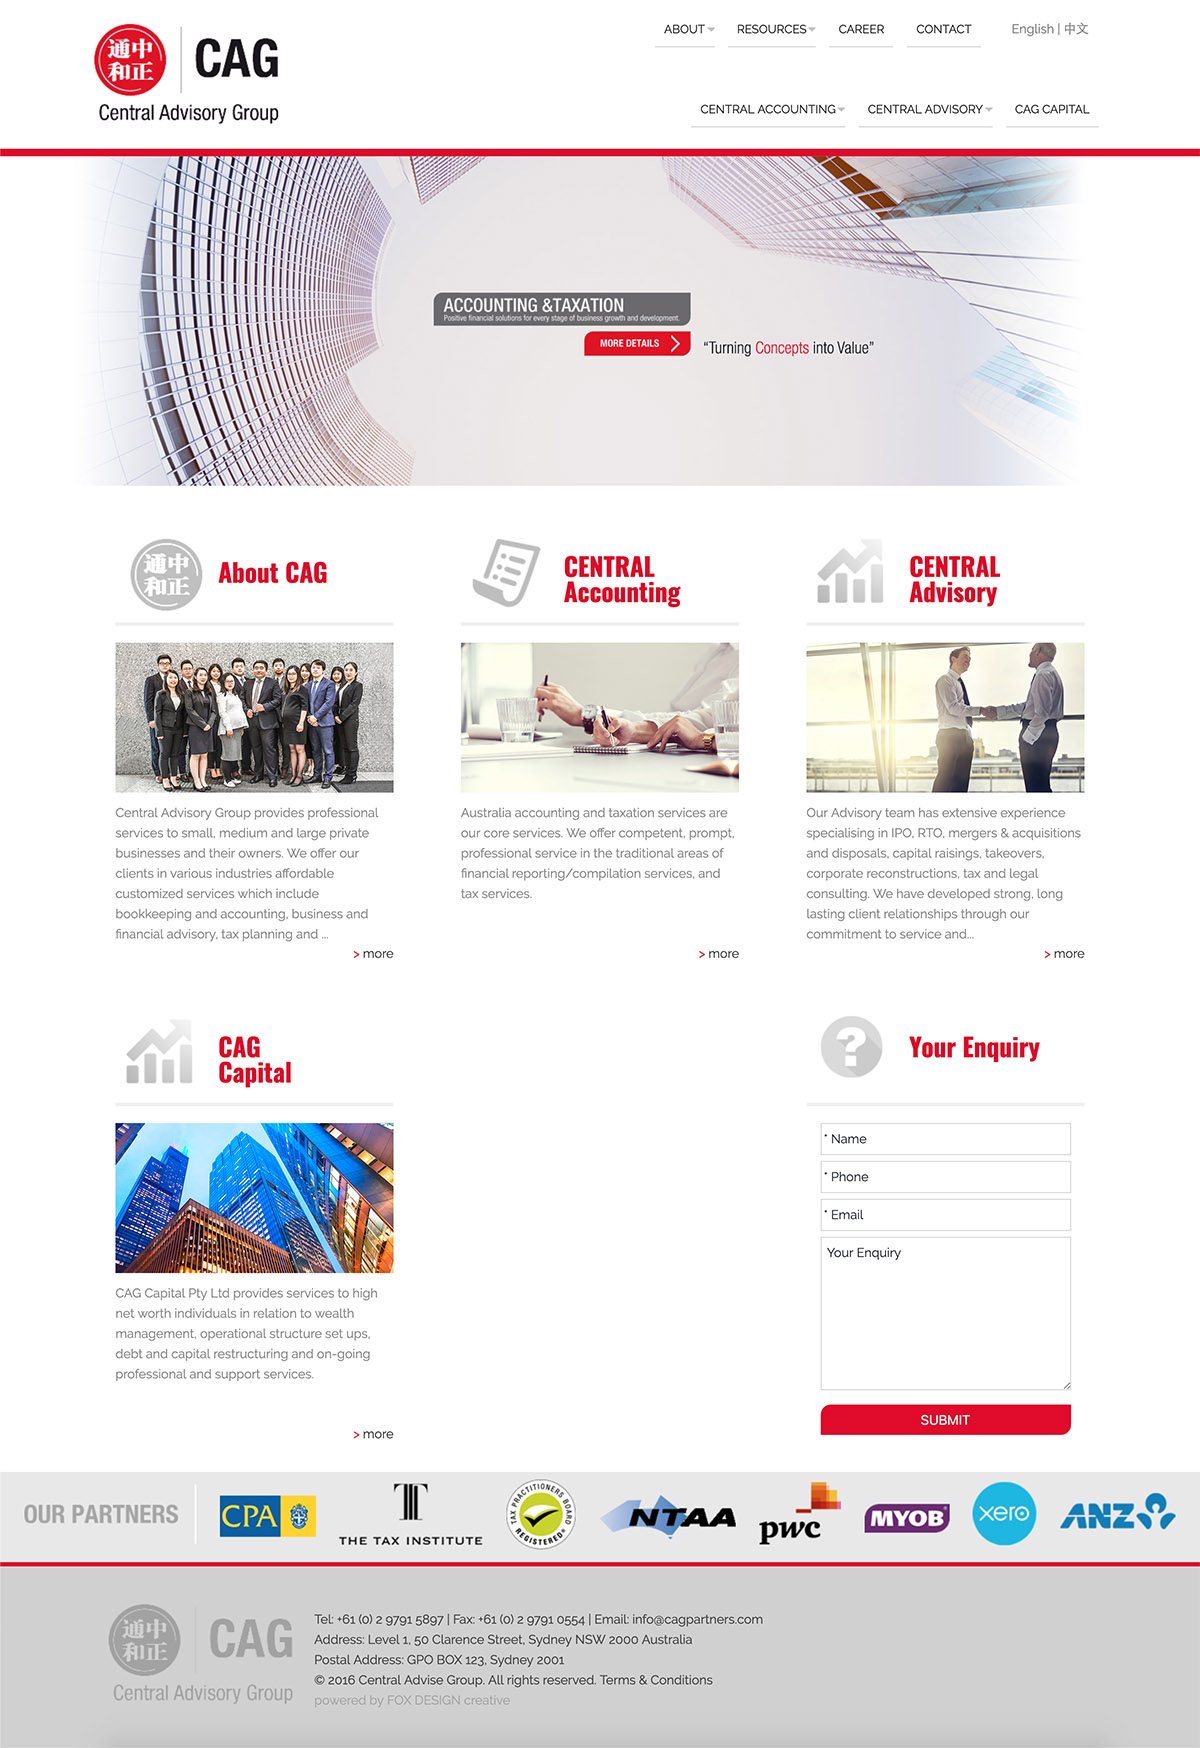 Central Advisory Group website design and maintenance by FOX DESIGN